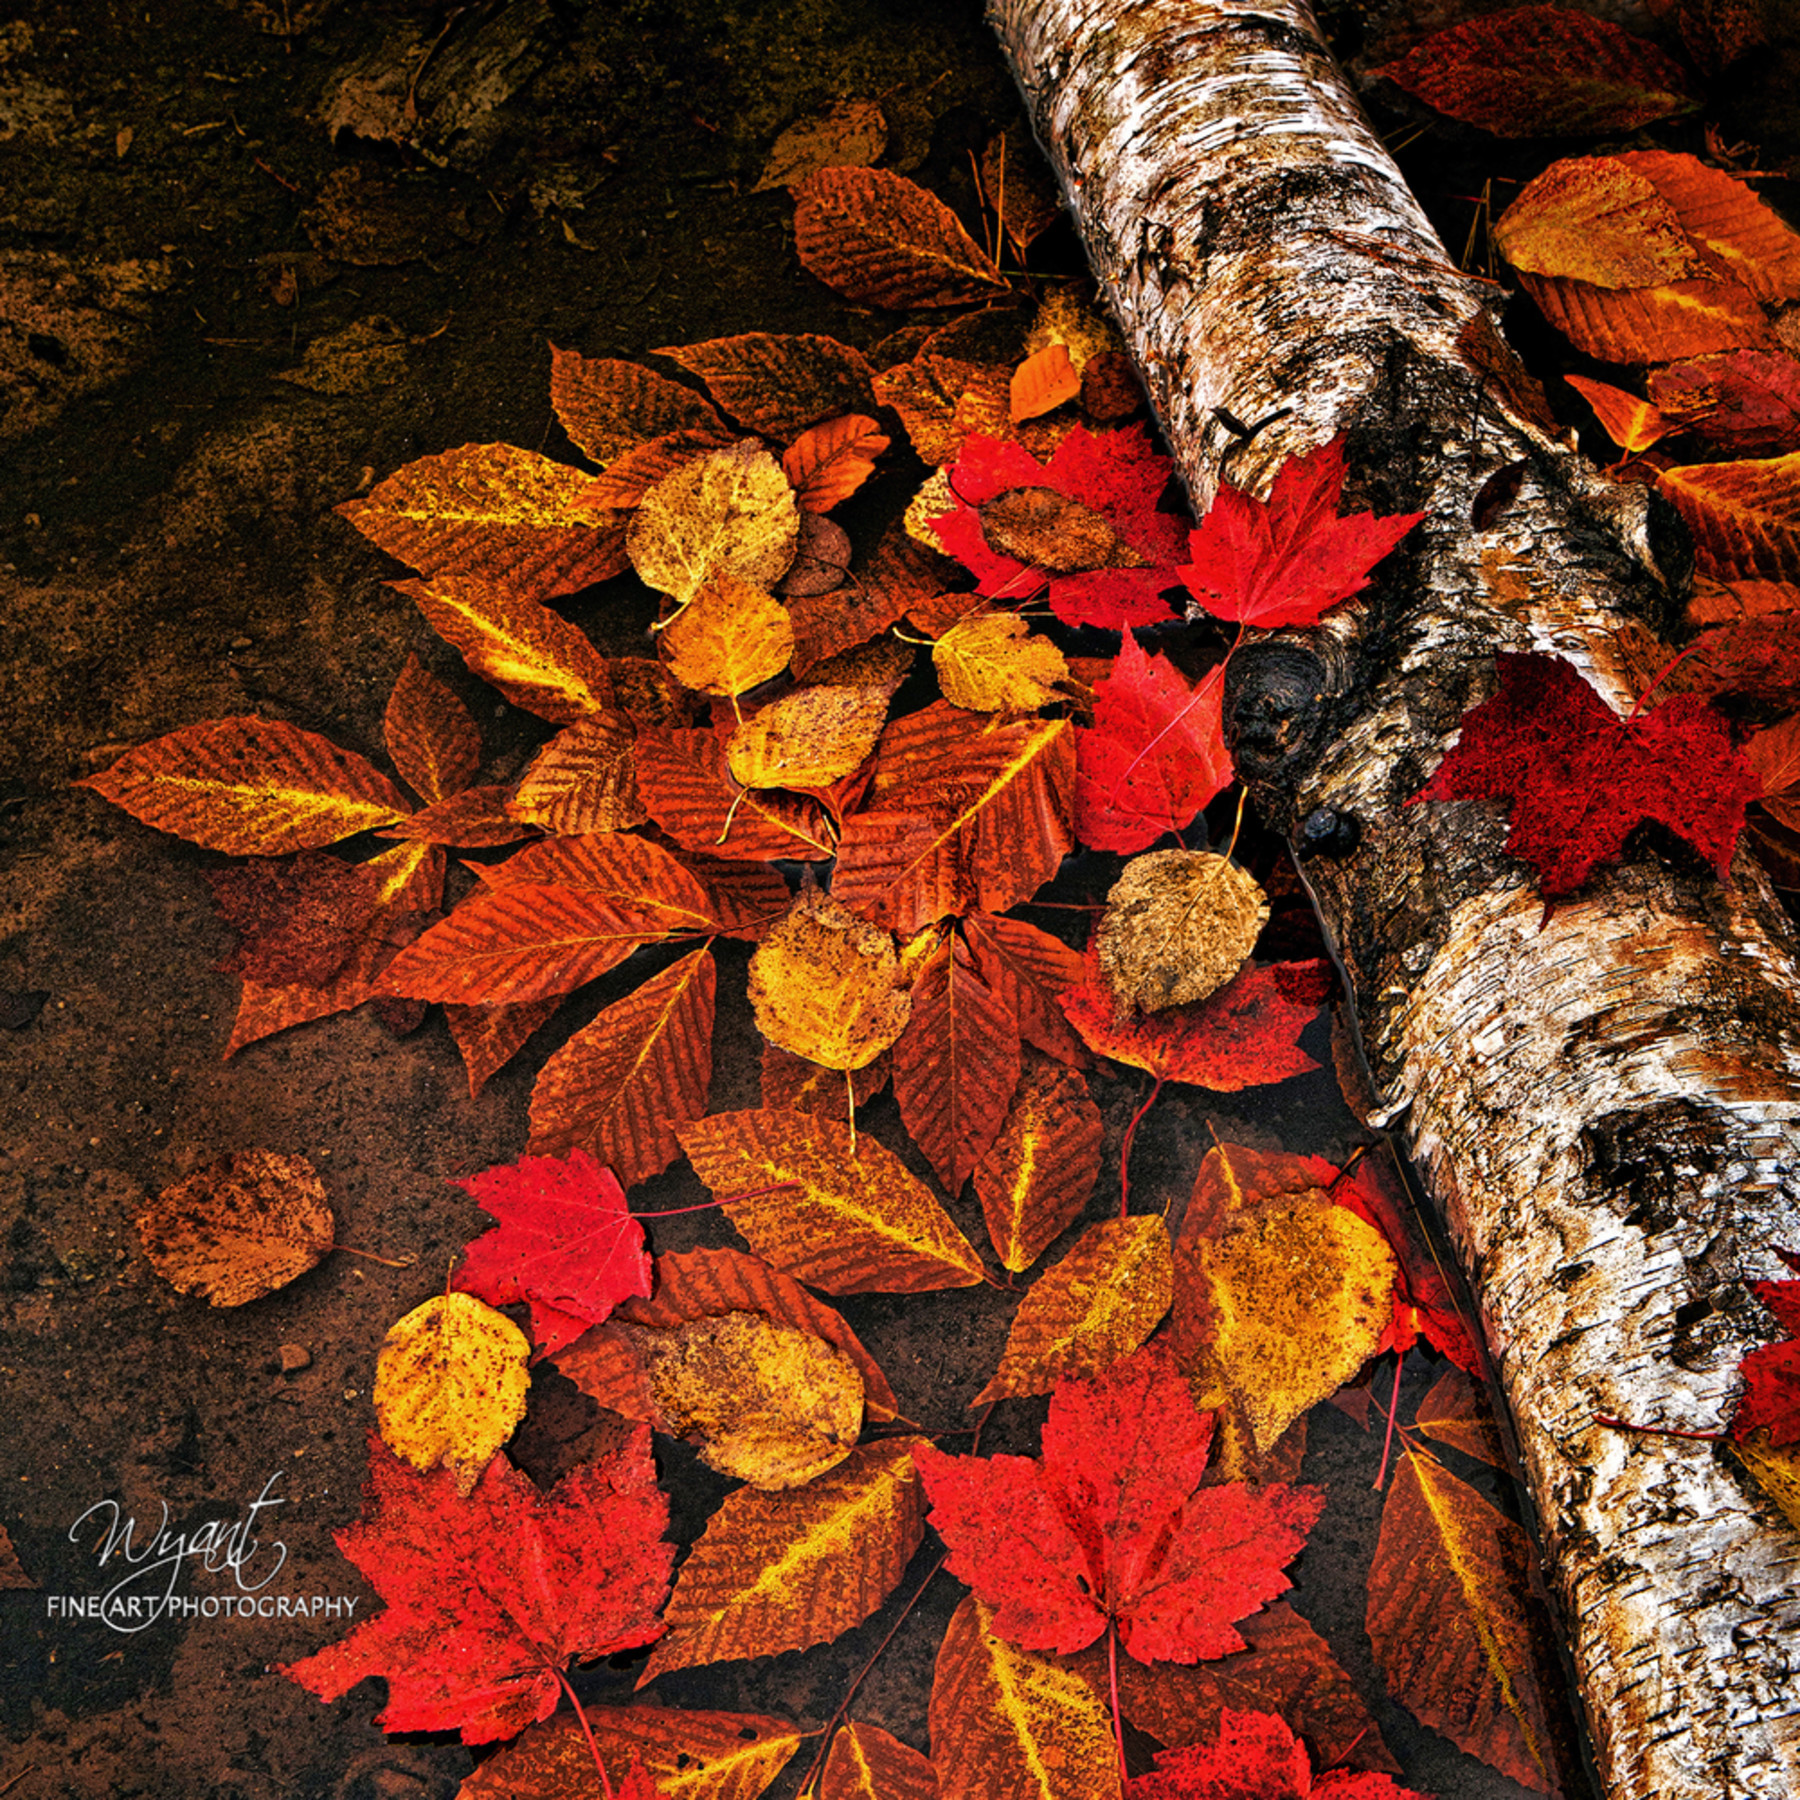 Autumn leaves in water web cwr3z3